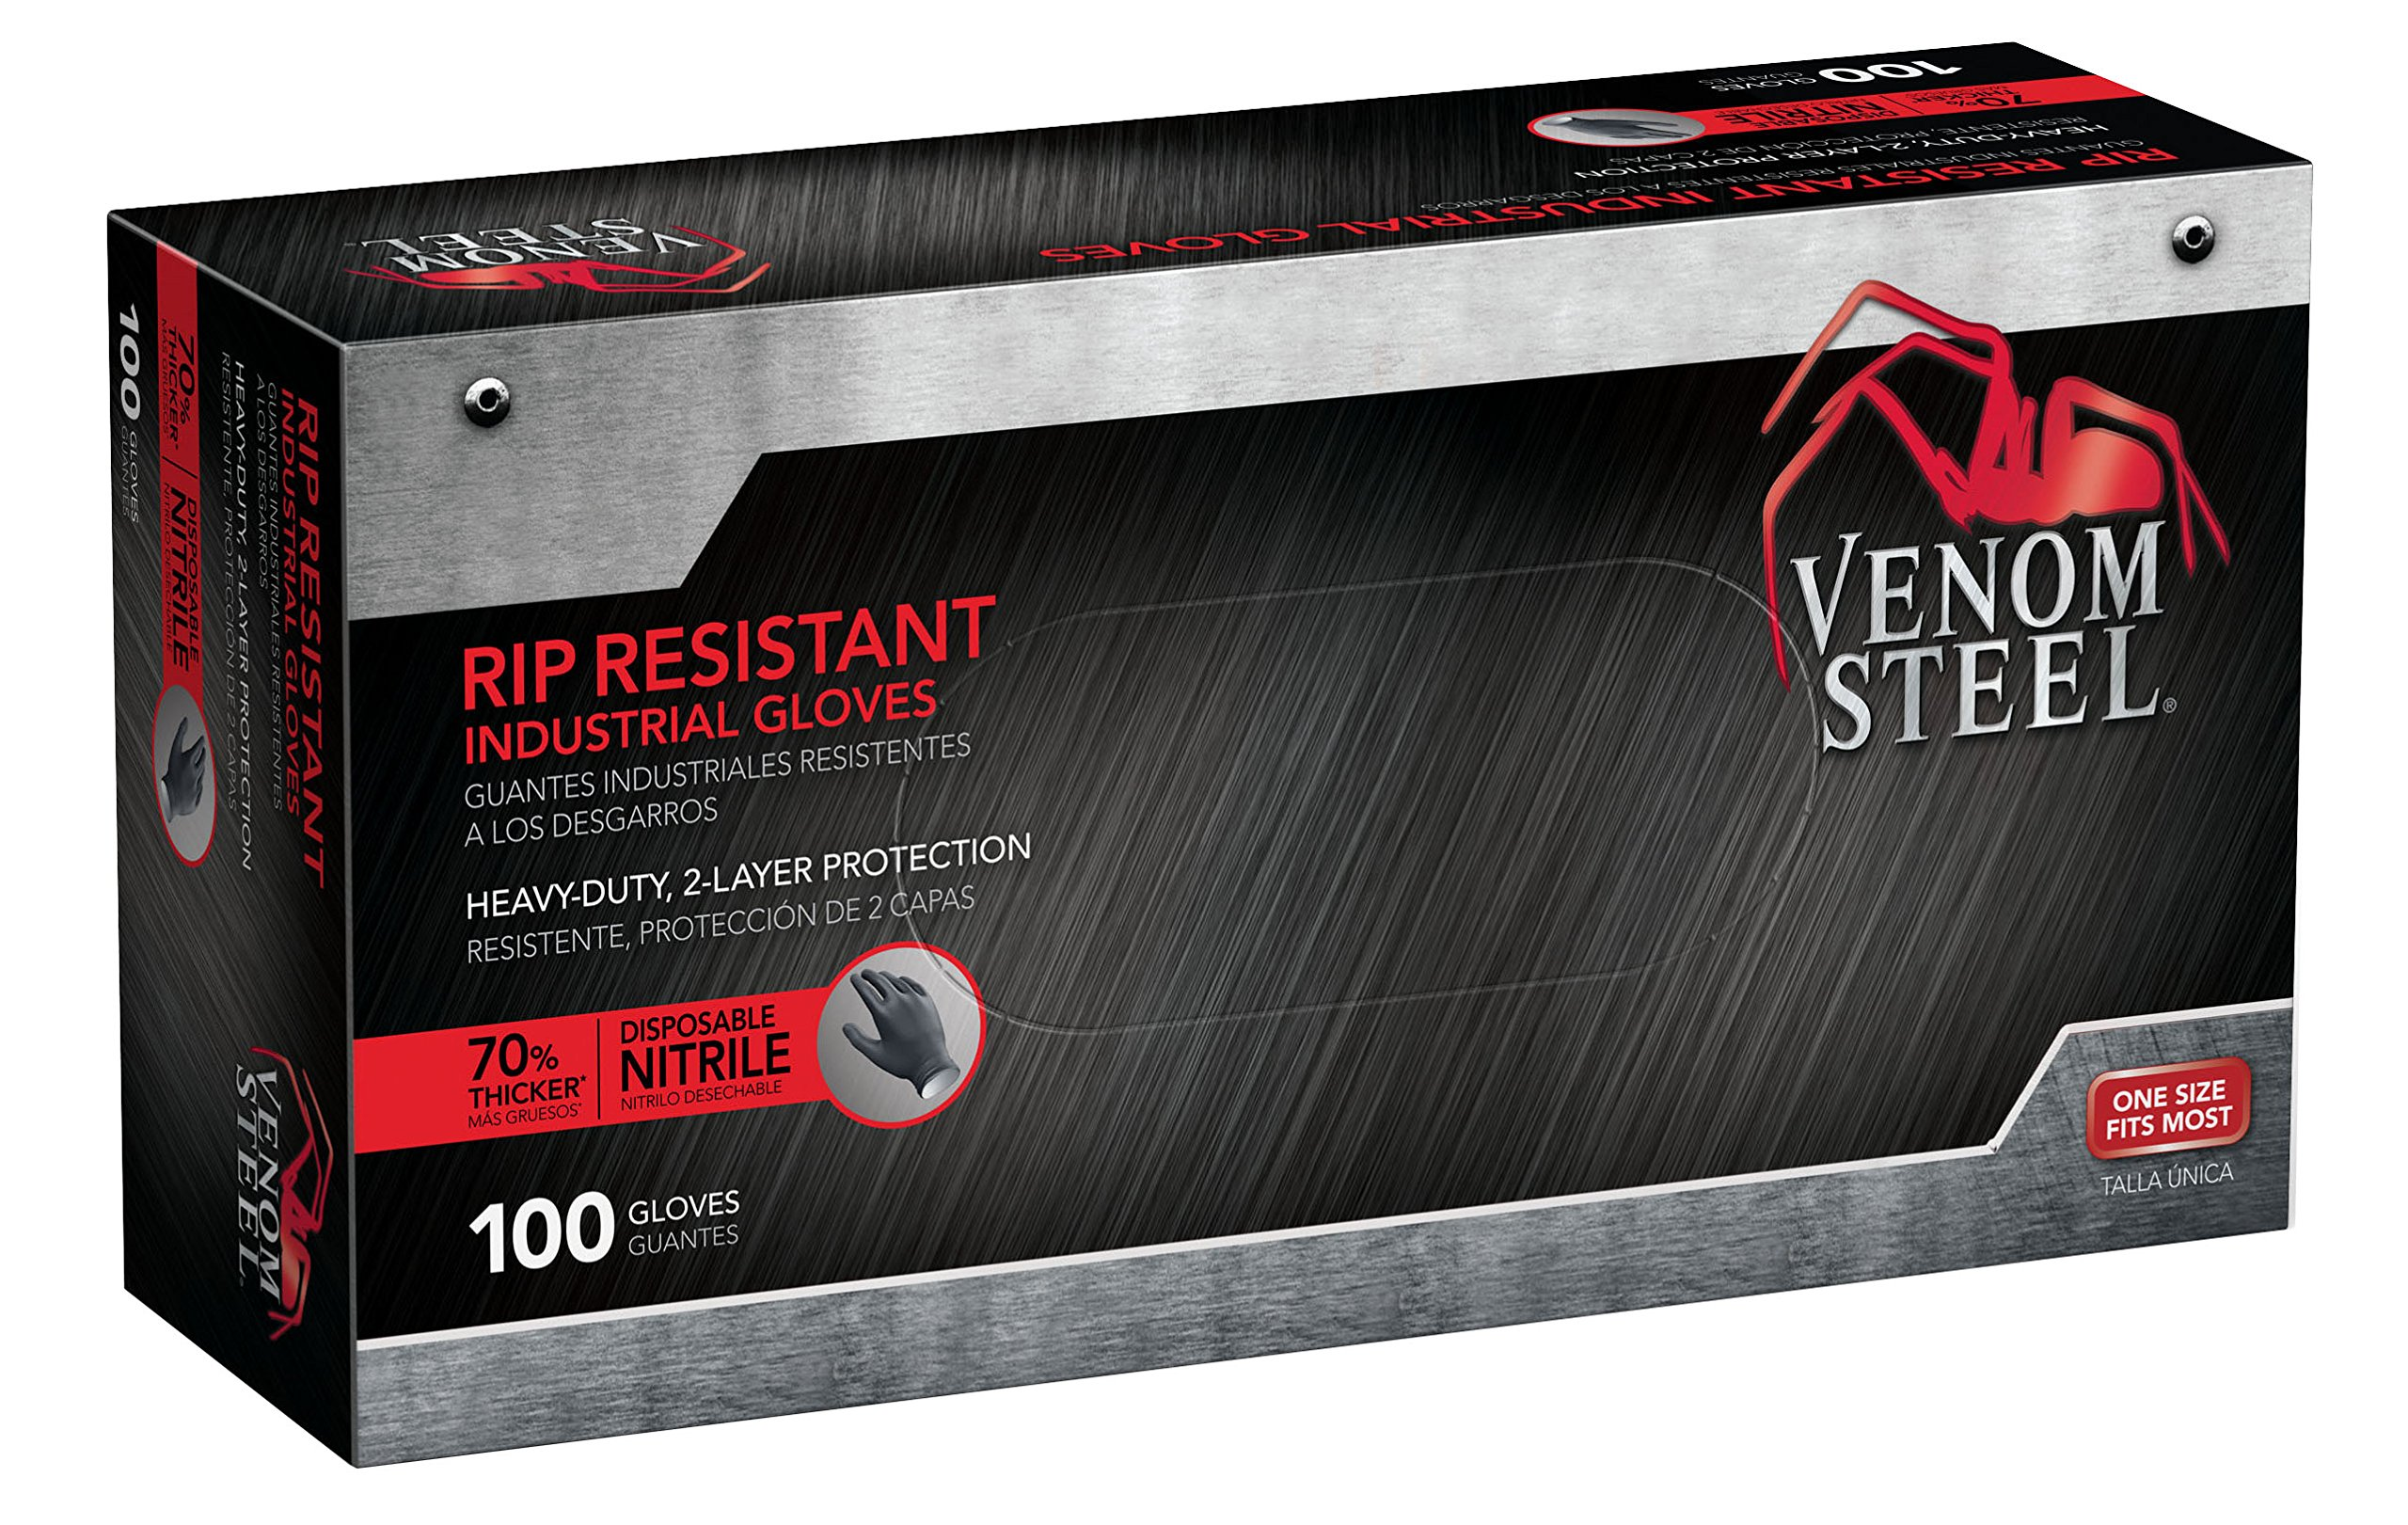 Venom Steel Rip Resistant Industrial Nitrile Gloves 2-Layer,Black White, Latex Rubber Free, Disposable, One Size Fits Most (Pack of 100)